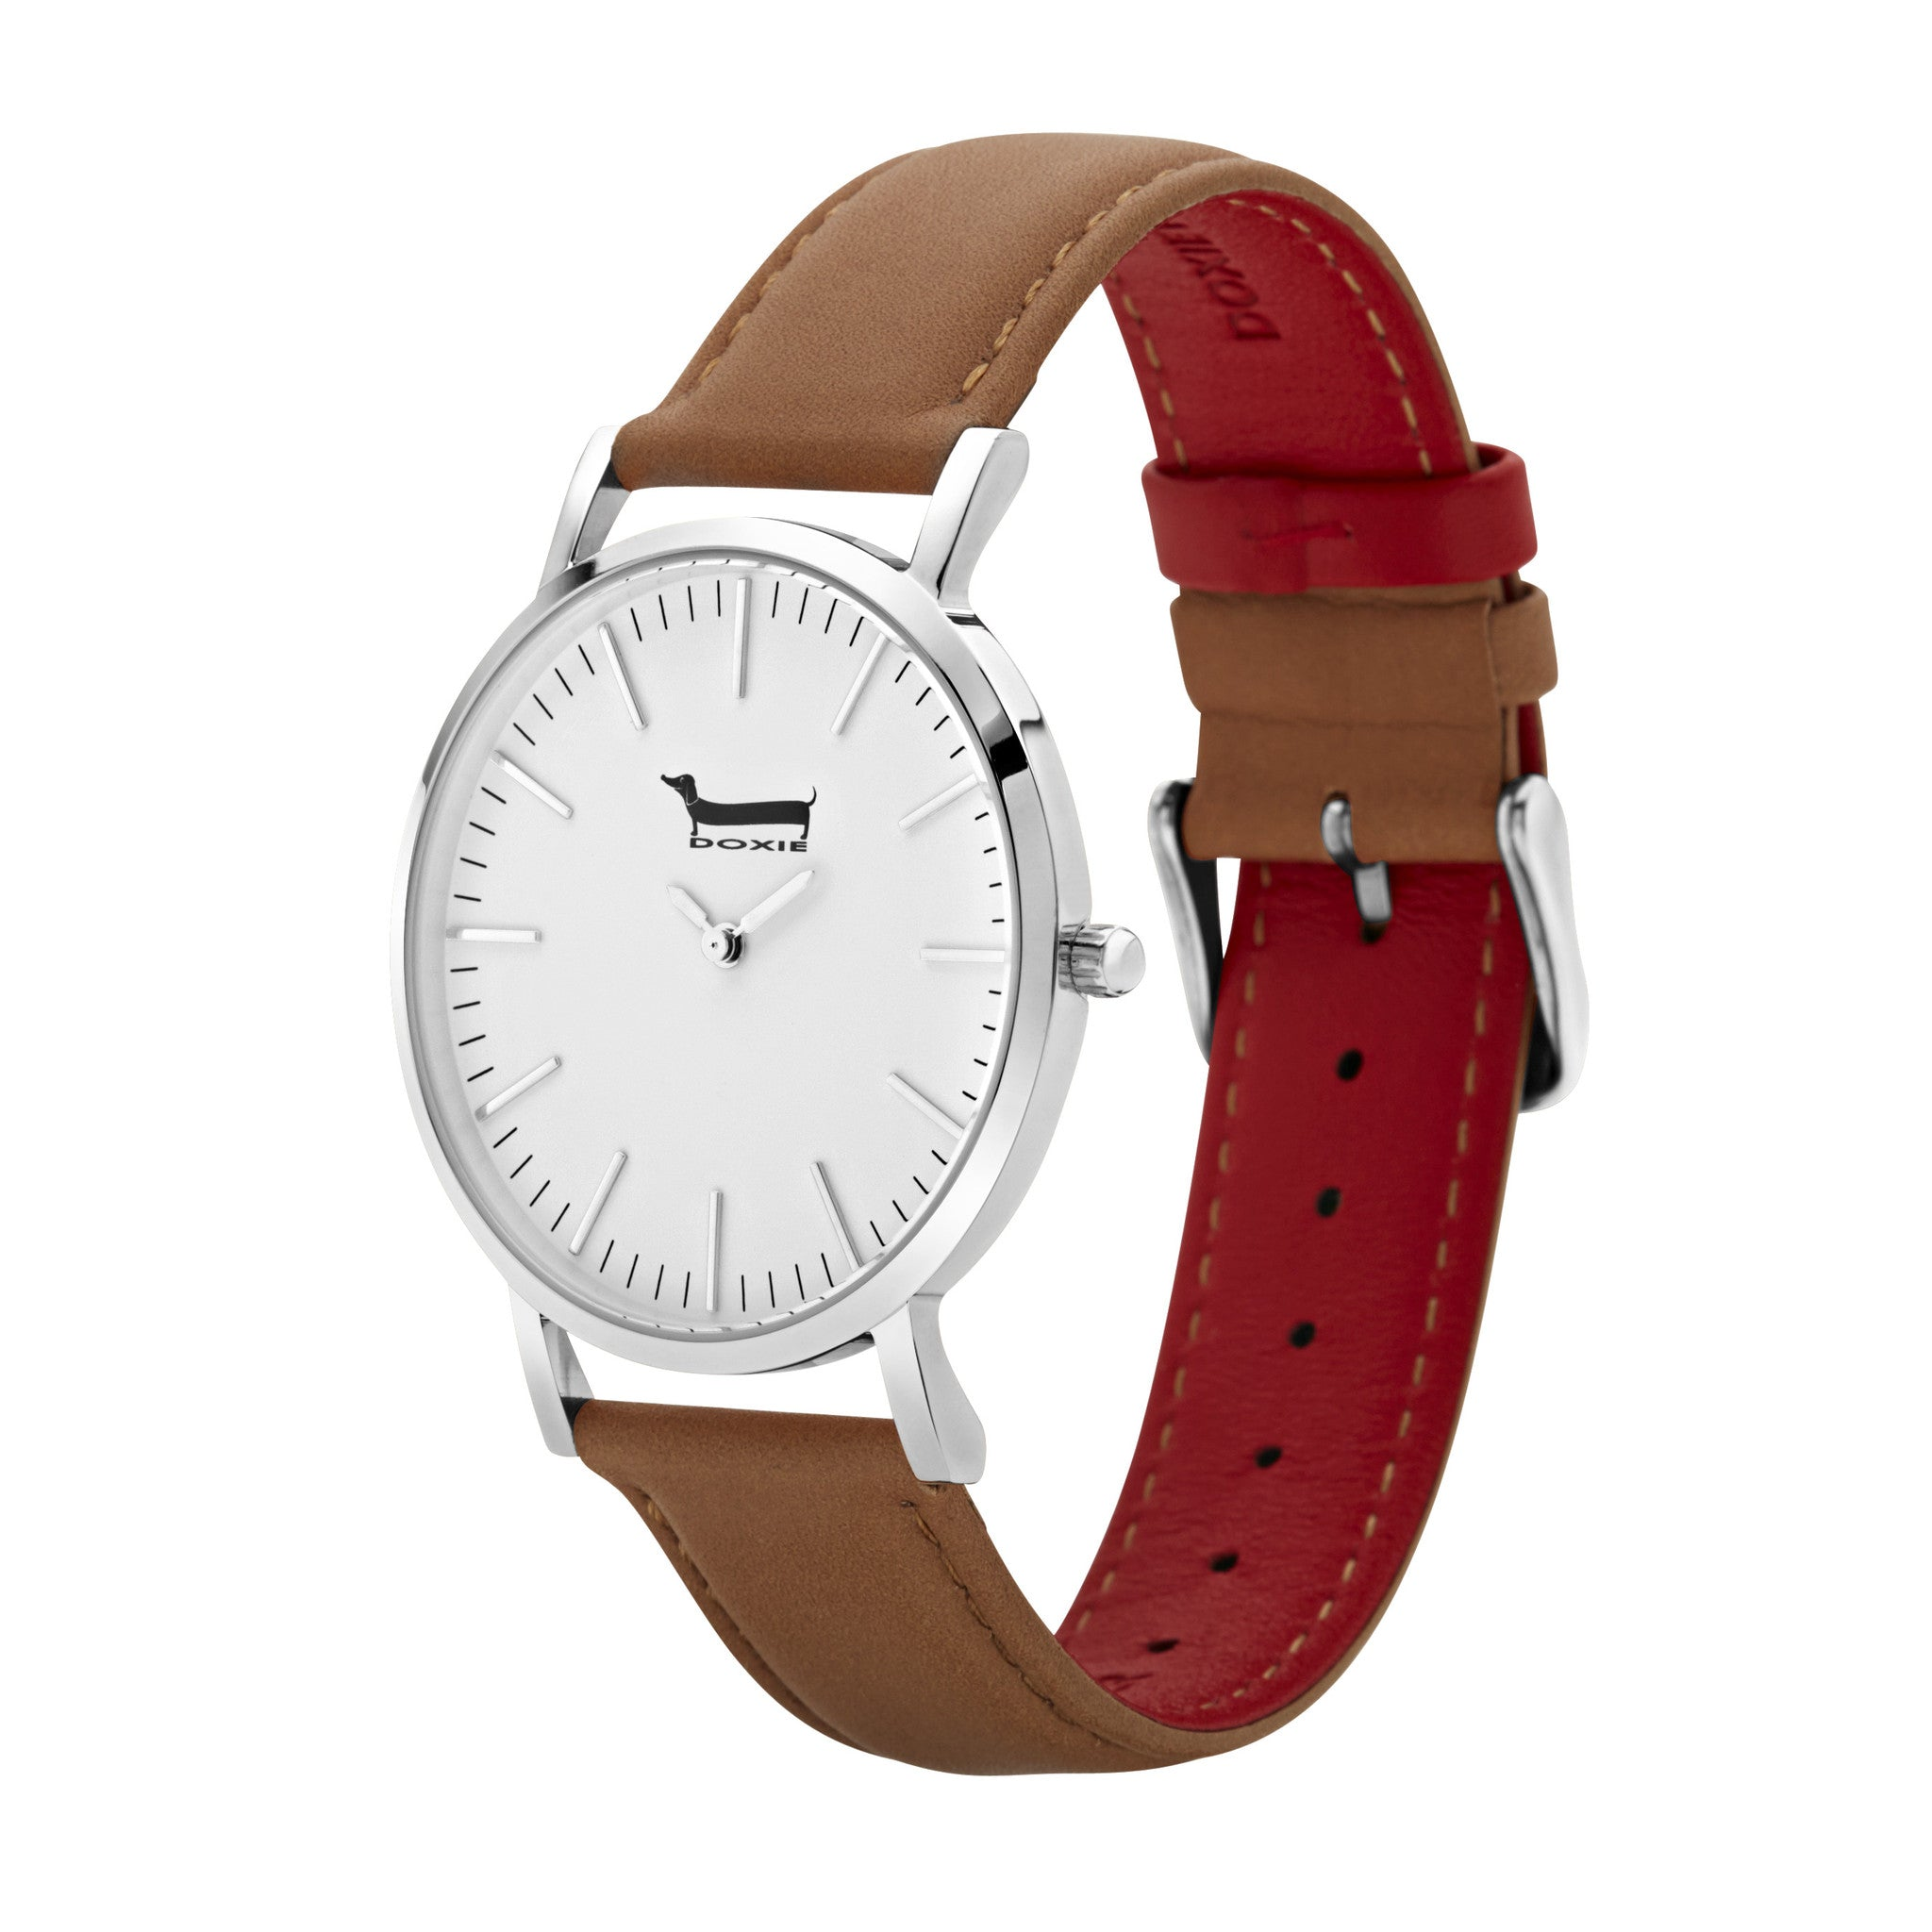 overstock watches strap dial jewelry women of signature today pearl leather product mother patent lr mopg s stein red shipping philip watch free quartz womens